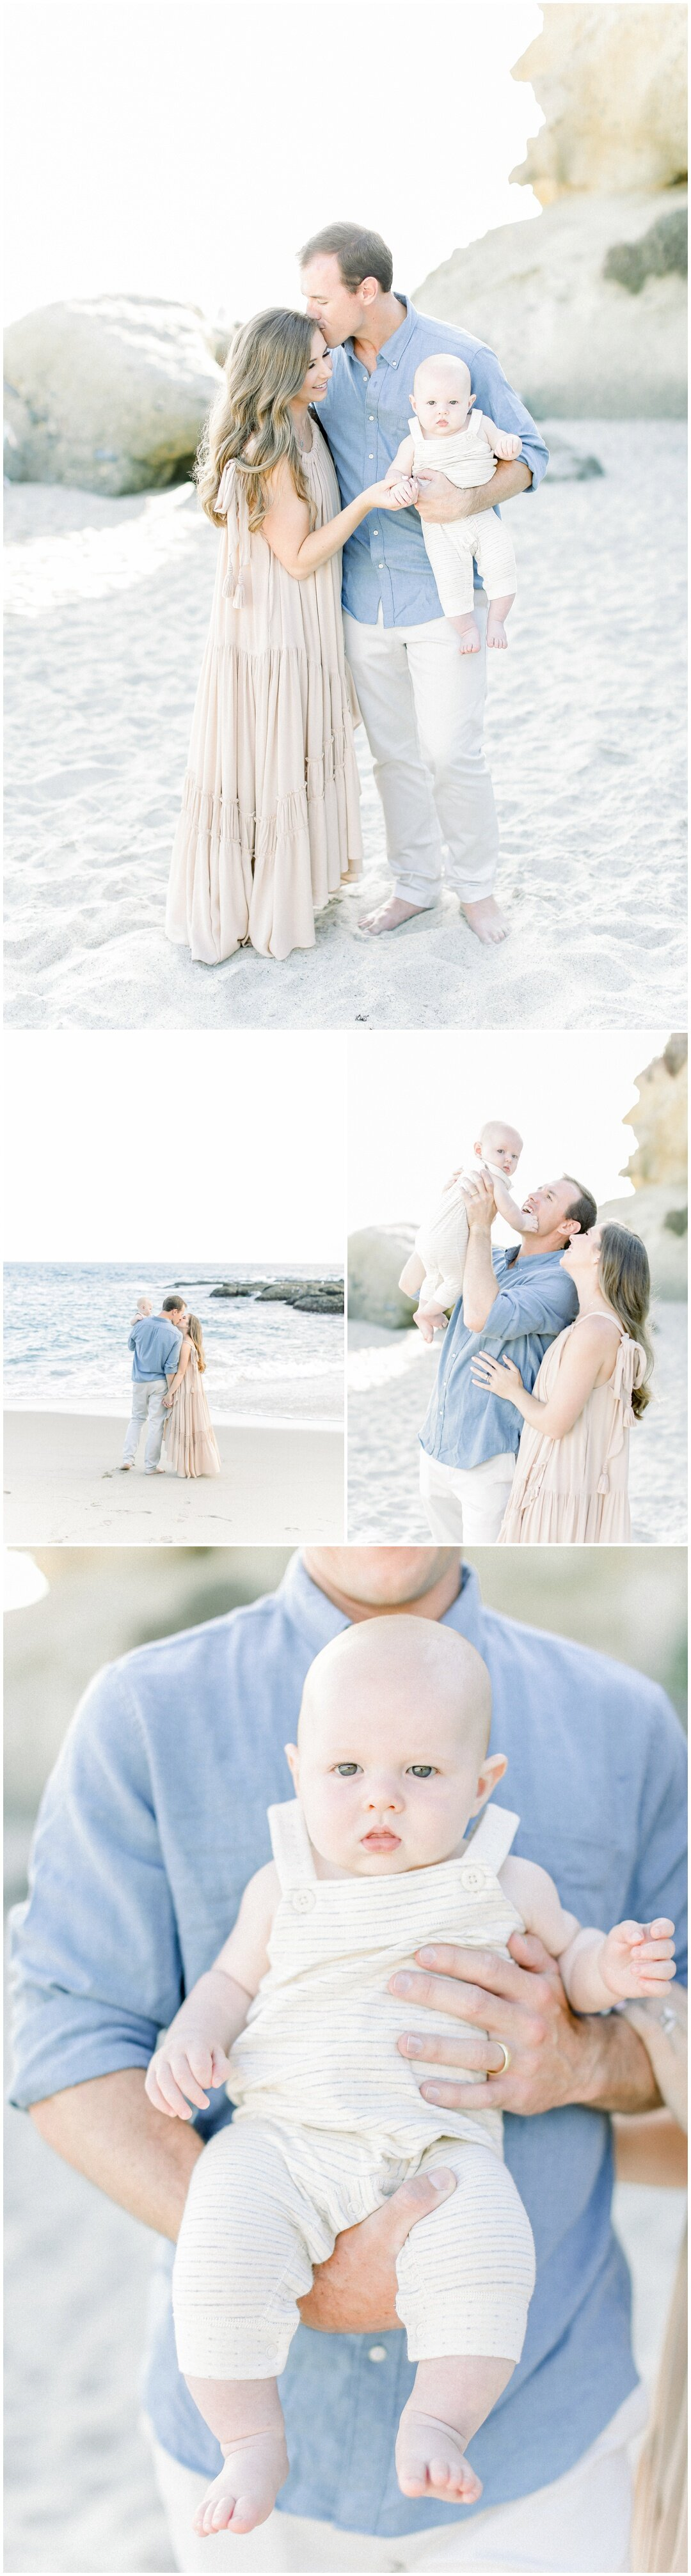 Newport+Beach+Newborn+Maternity+Photographer+Orange+County+Family+Photographer+Cori+Kleckner+Photography+Forgatch+Family+Matt+Kelley+Jack+Forgatch+_4406.jpg